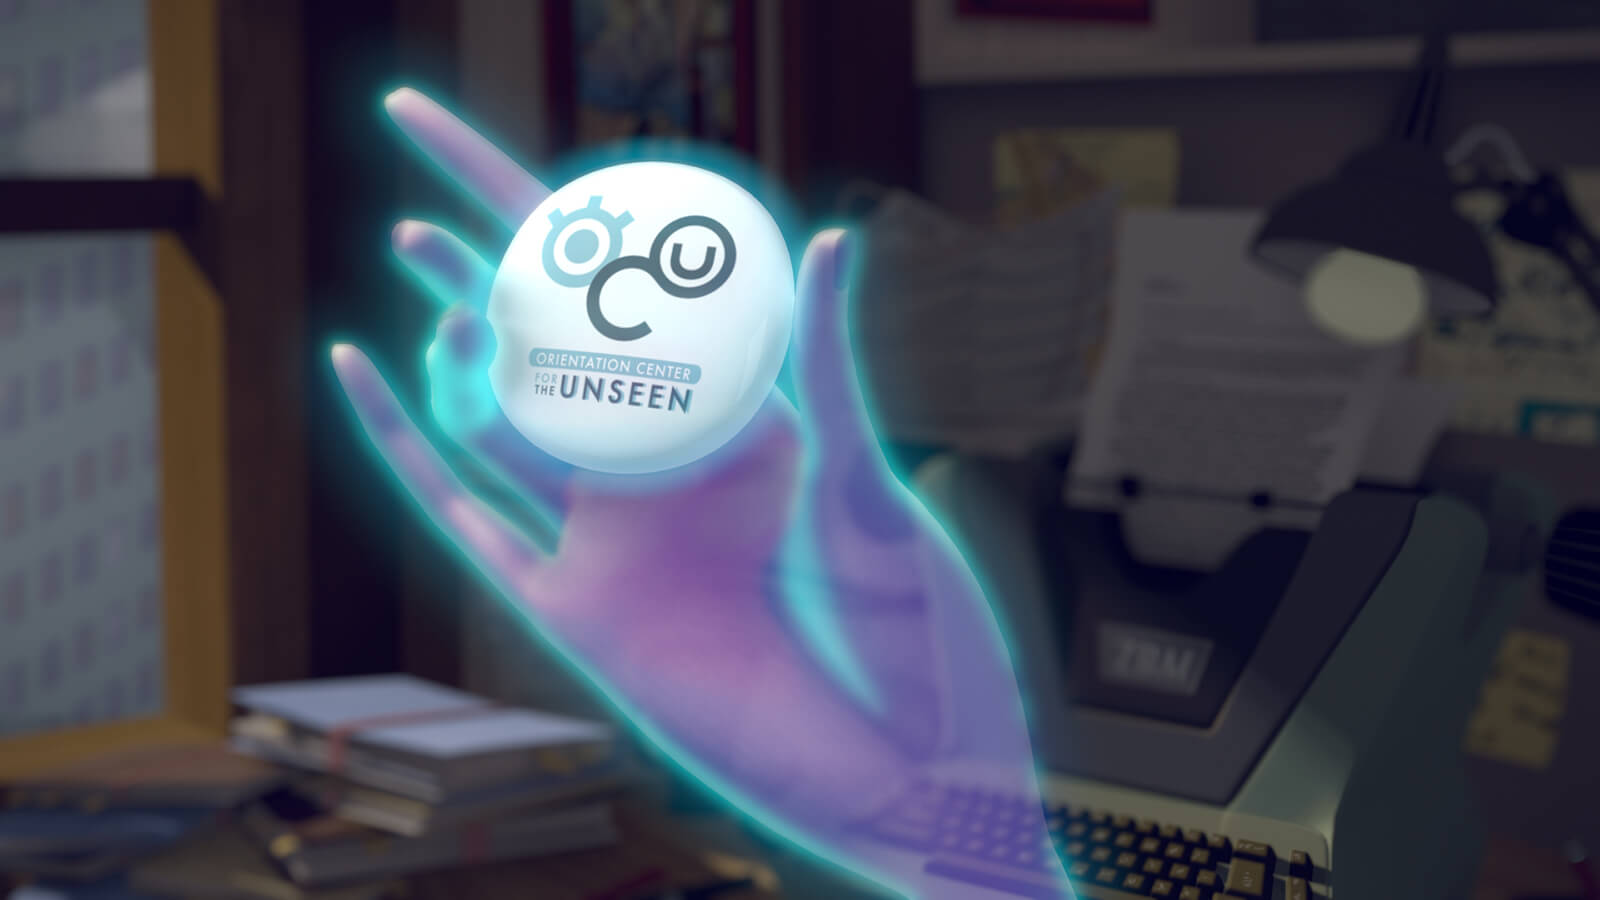 """A translucent, glowing blue hand holds up a round, white button reading """"Orientation Center for the Unseen."""""""